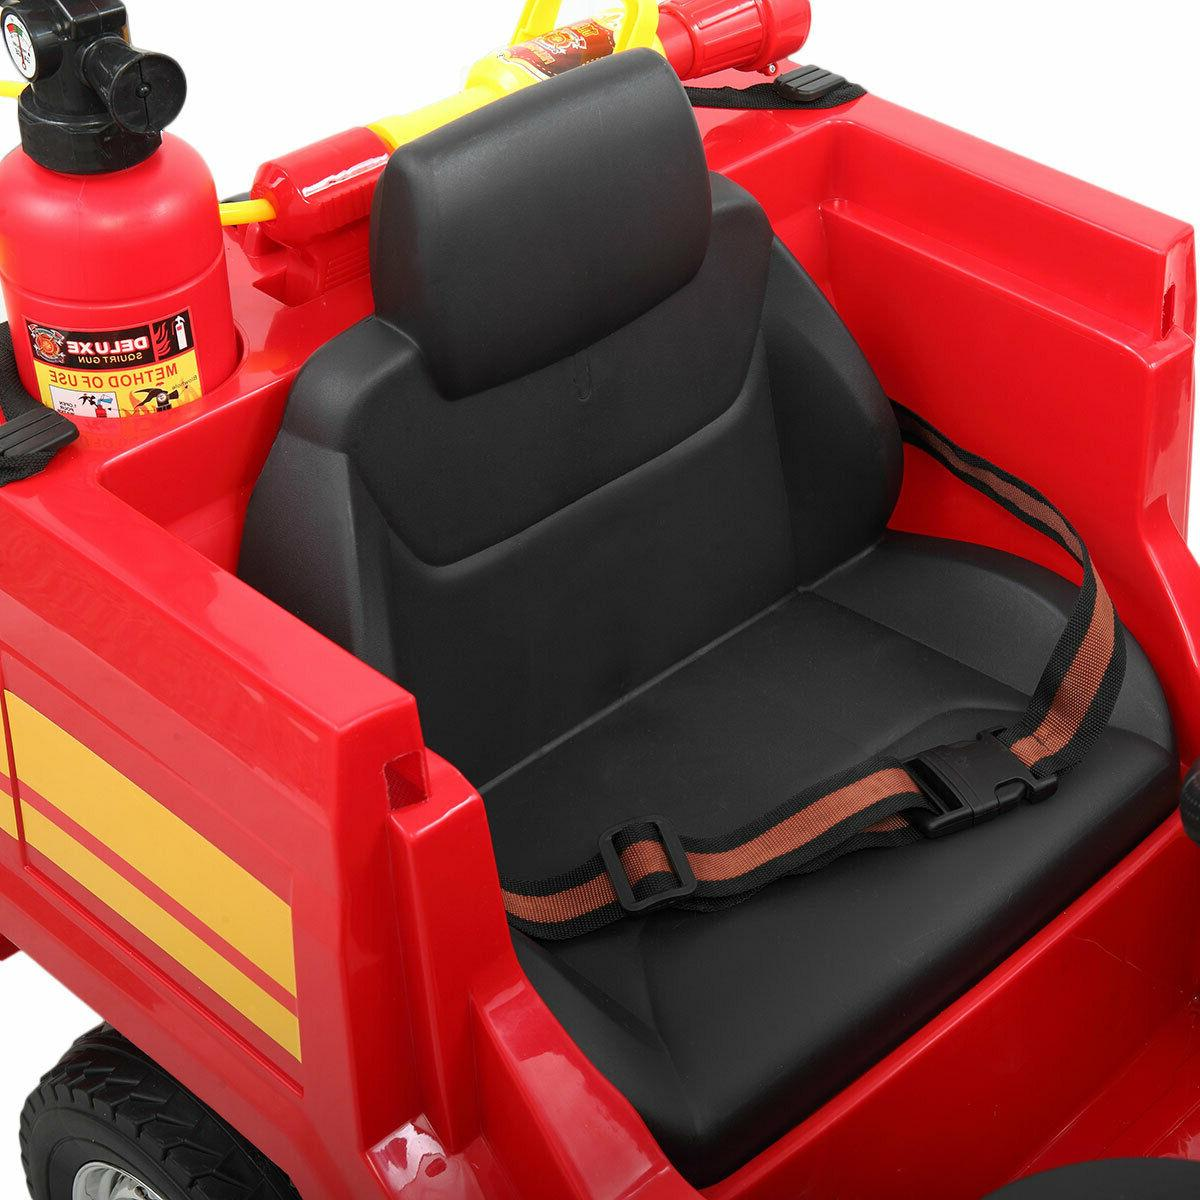 Red Electric Kids Ride Child Play w/ Remote Control